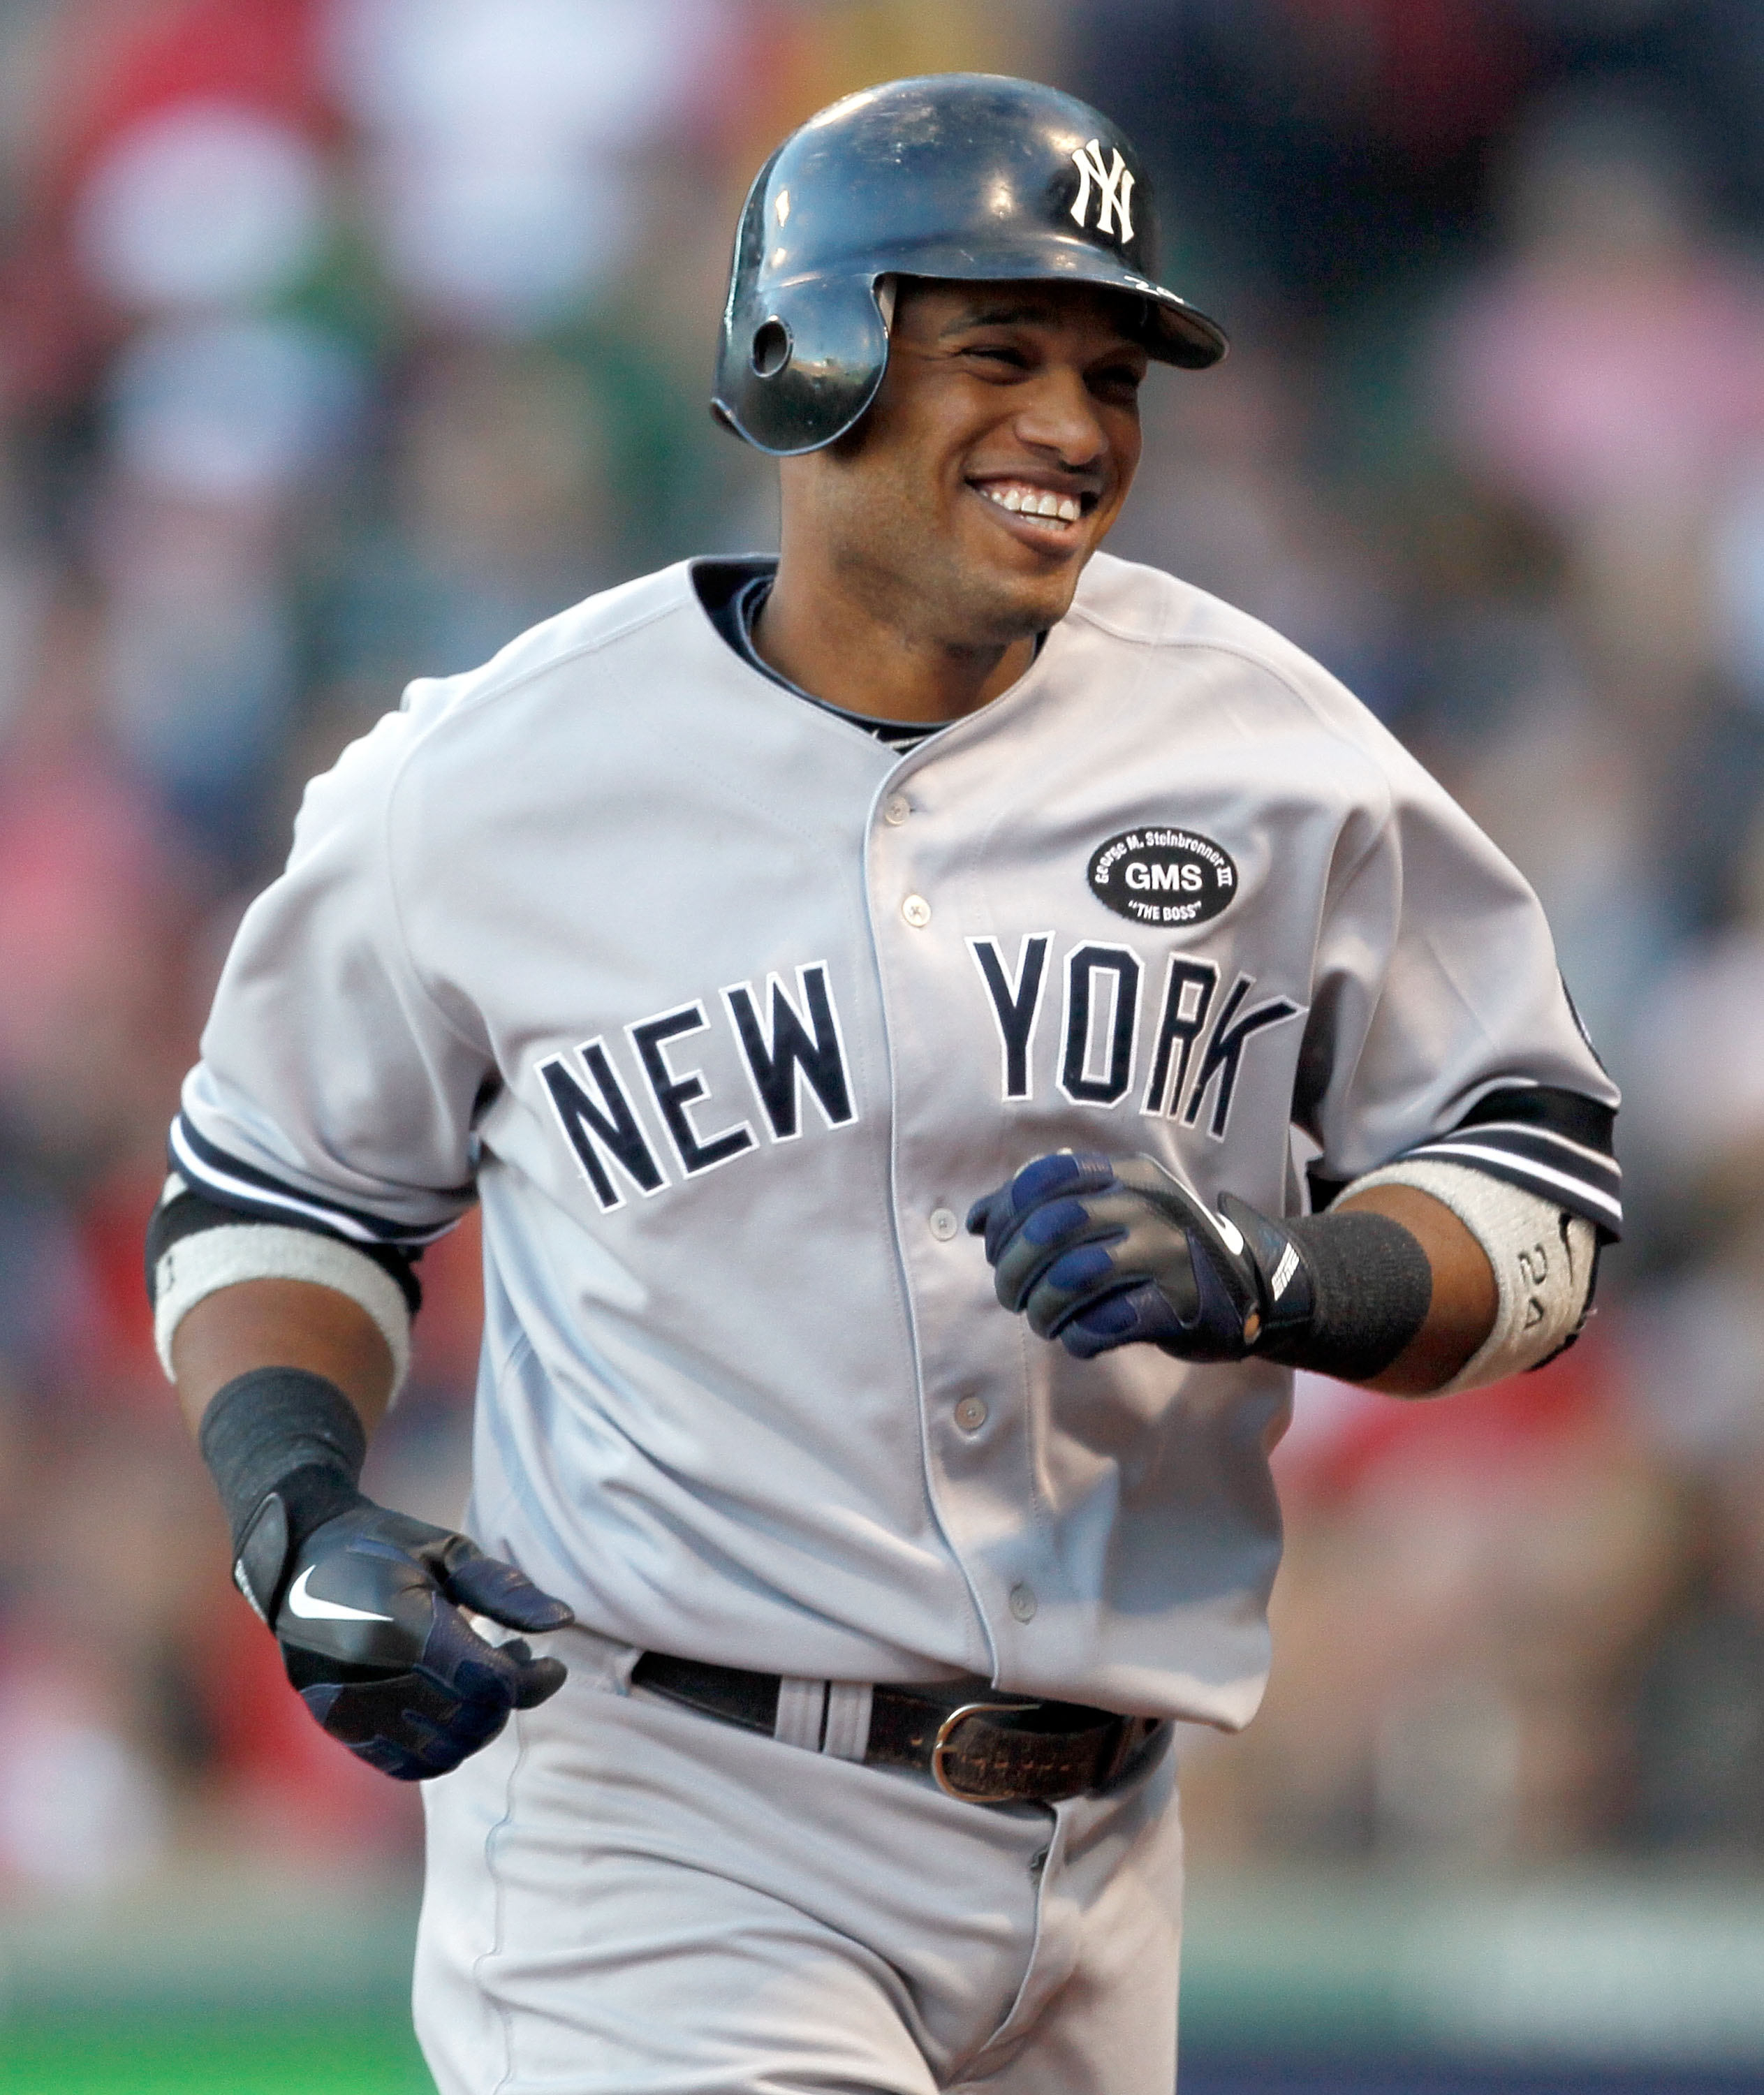 BOSTON - OCTOBER 2:  Robinson Cano #24 of the New York Yankees smiles after hitting a solo home run in the third inning during the first game of a doubleheader against the Boston Red Sox at Fenway Park October 2, 2010 in Boston, Massachusetts. (Photo by J